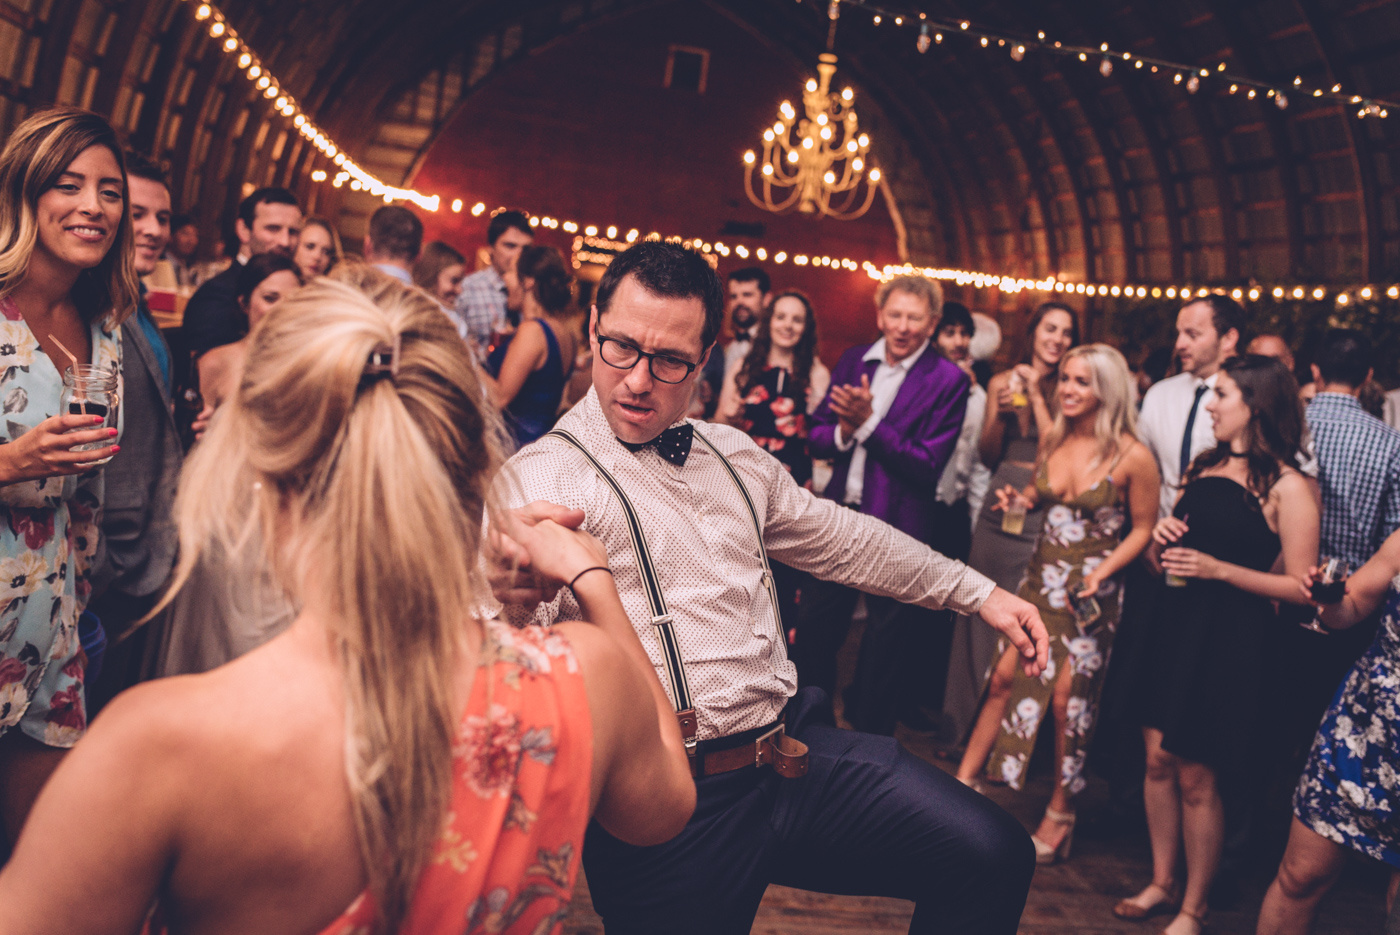 Those Australians Know How To Dance by Patrick Chondon